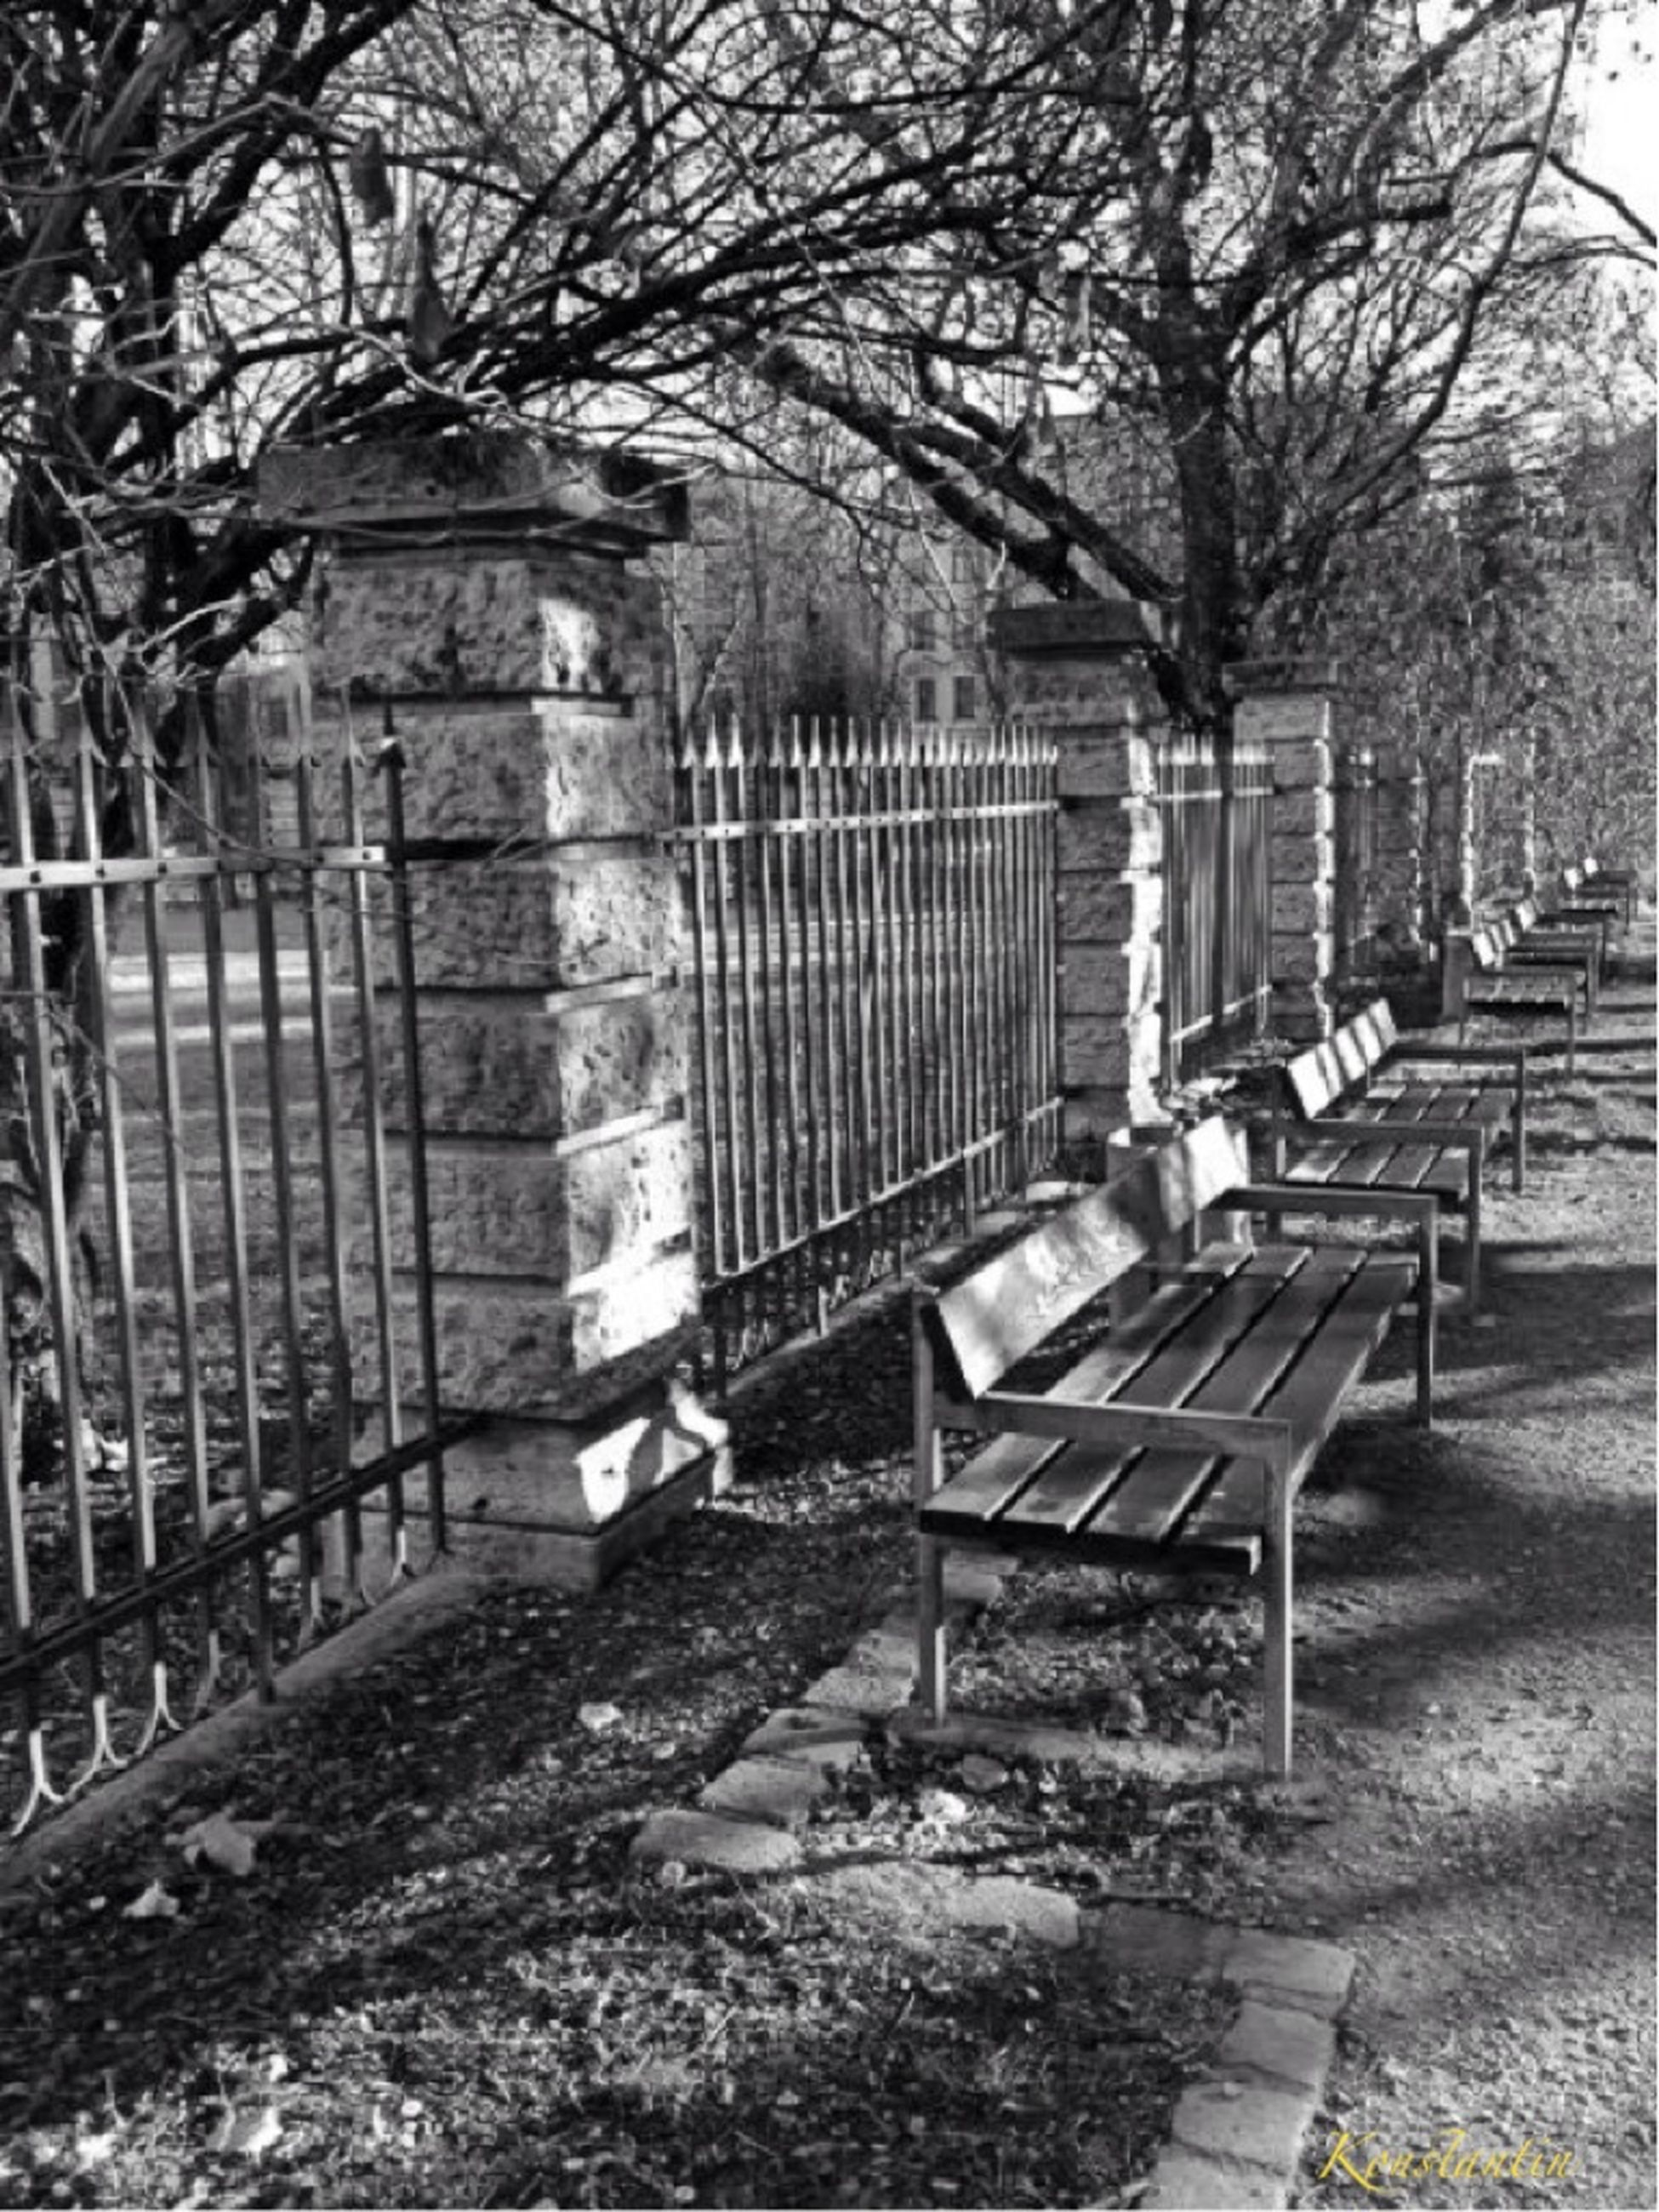 built structure, architecture, tree, building exterior, bench, park - man made space, steps, empty, absence, day, sunlight, footpath, railing, outdoors, shadow, the way forward, gate, no people, cemetery, wood - material